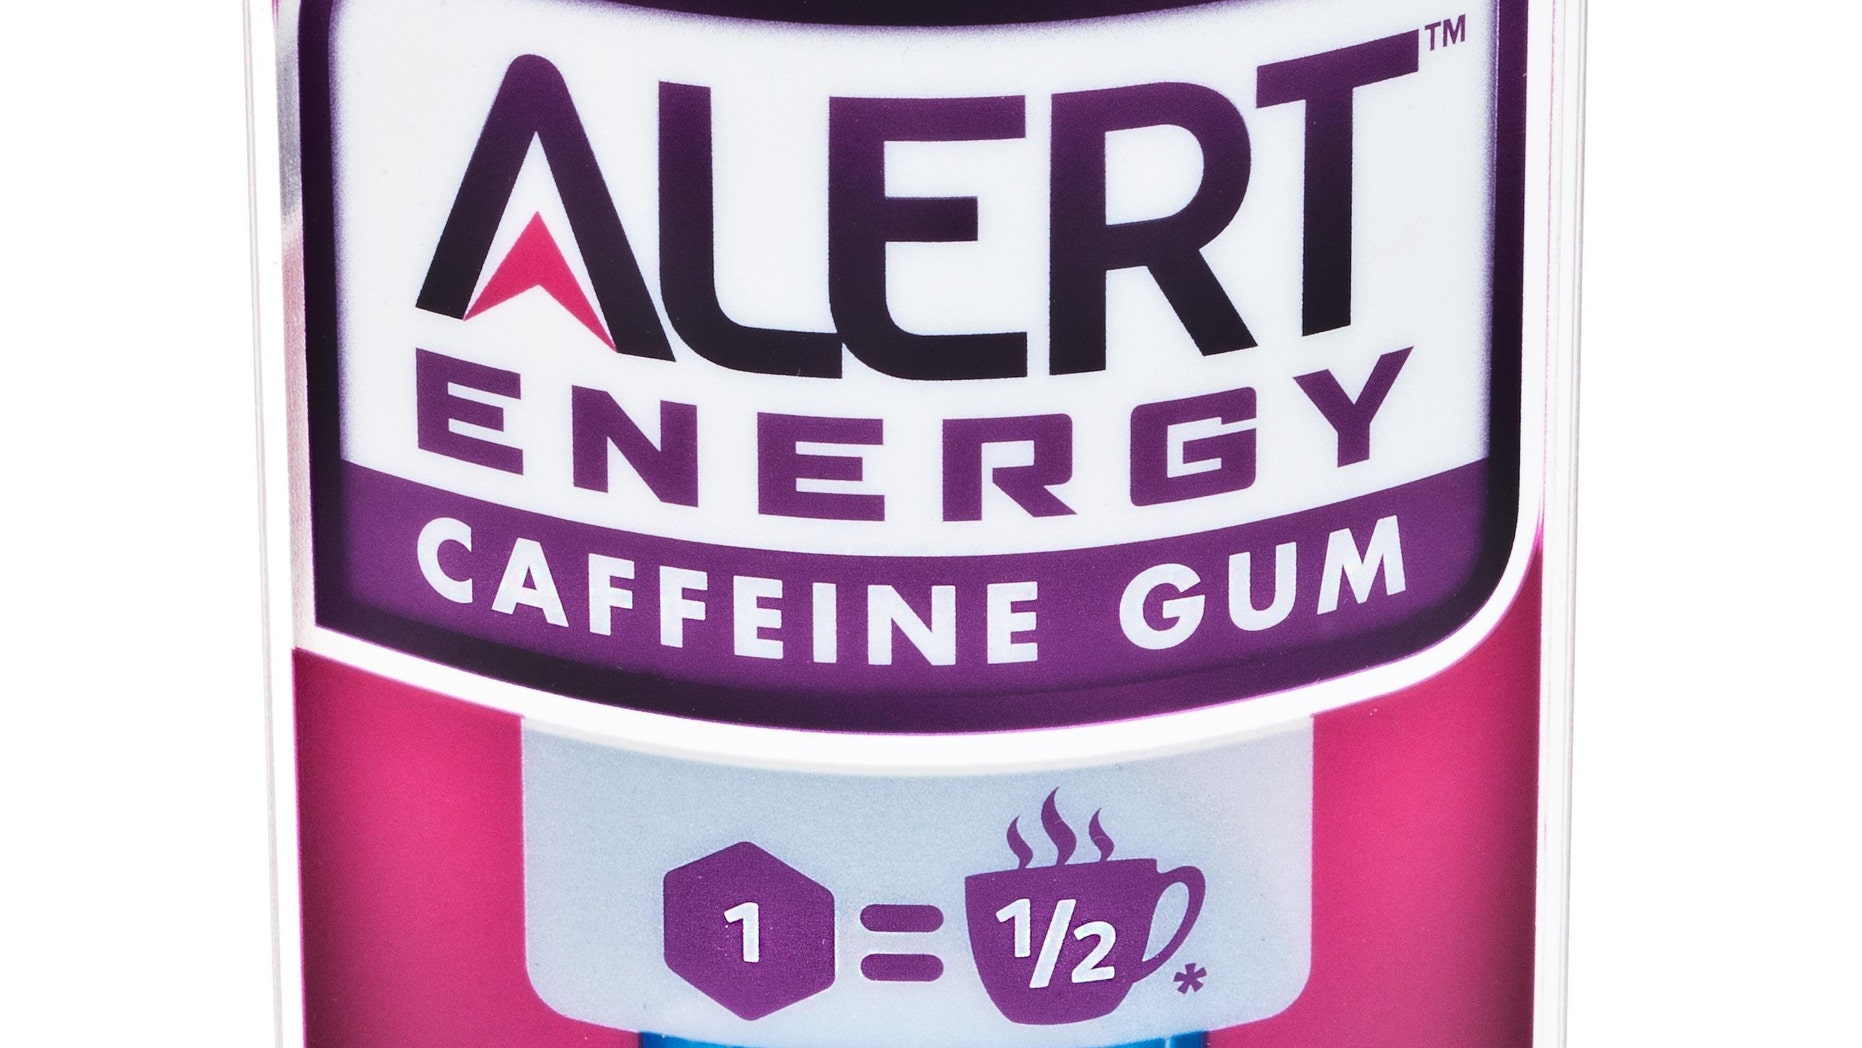 This product image provided by the Wm. Wrigley Jr. Company shows packaging for Alert Energy Caffeine Gum. (AP Photo/Wm. Wrigley Jr. Company)